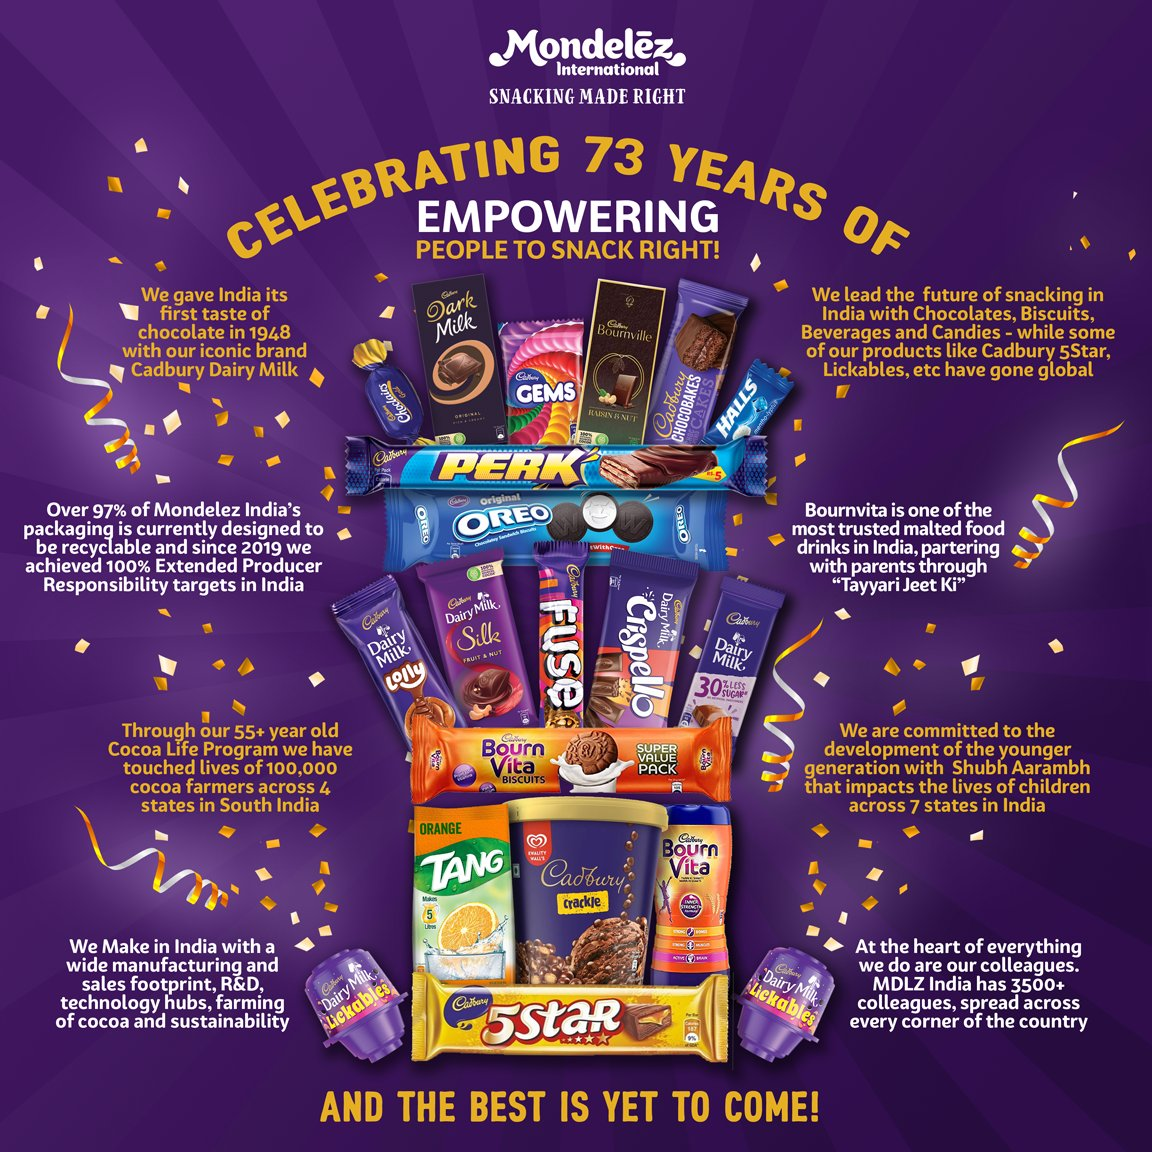 Happy 73rd Birthday to #TeamMDLZ #India! 🎂 We are so proud of this journey! #ThankYou to our consumers, for trusting and loving our brands. The Best is yet to come! #73YearsOfConsumerLove #SnackingMadeRight https://t.co/OMp8GMqOIN